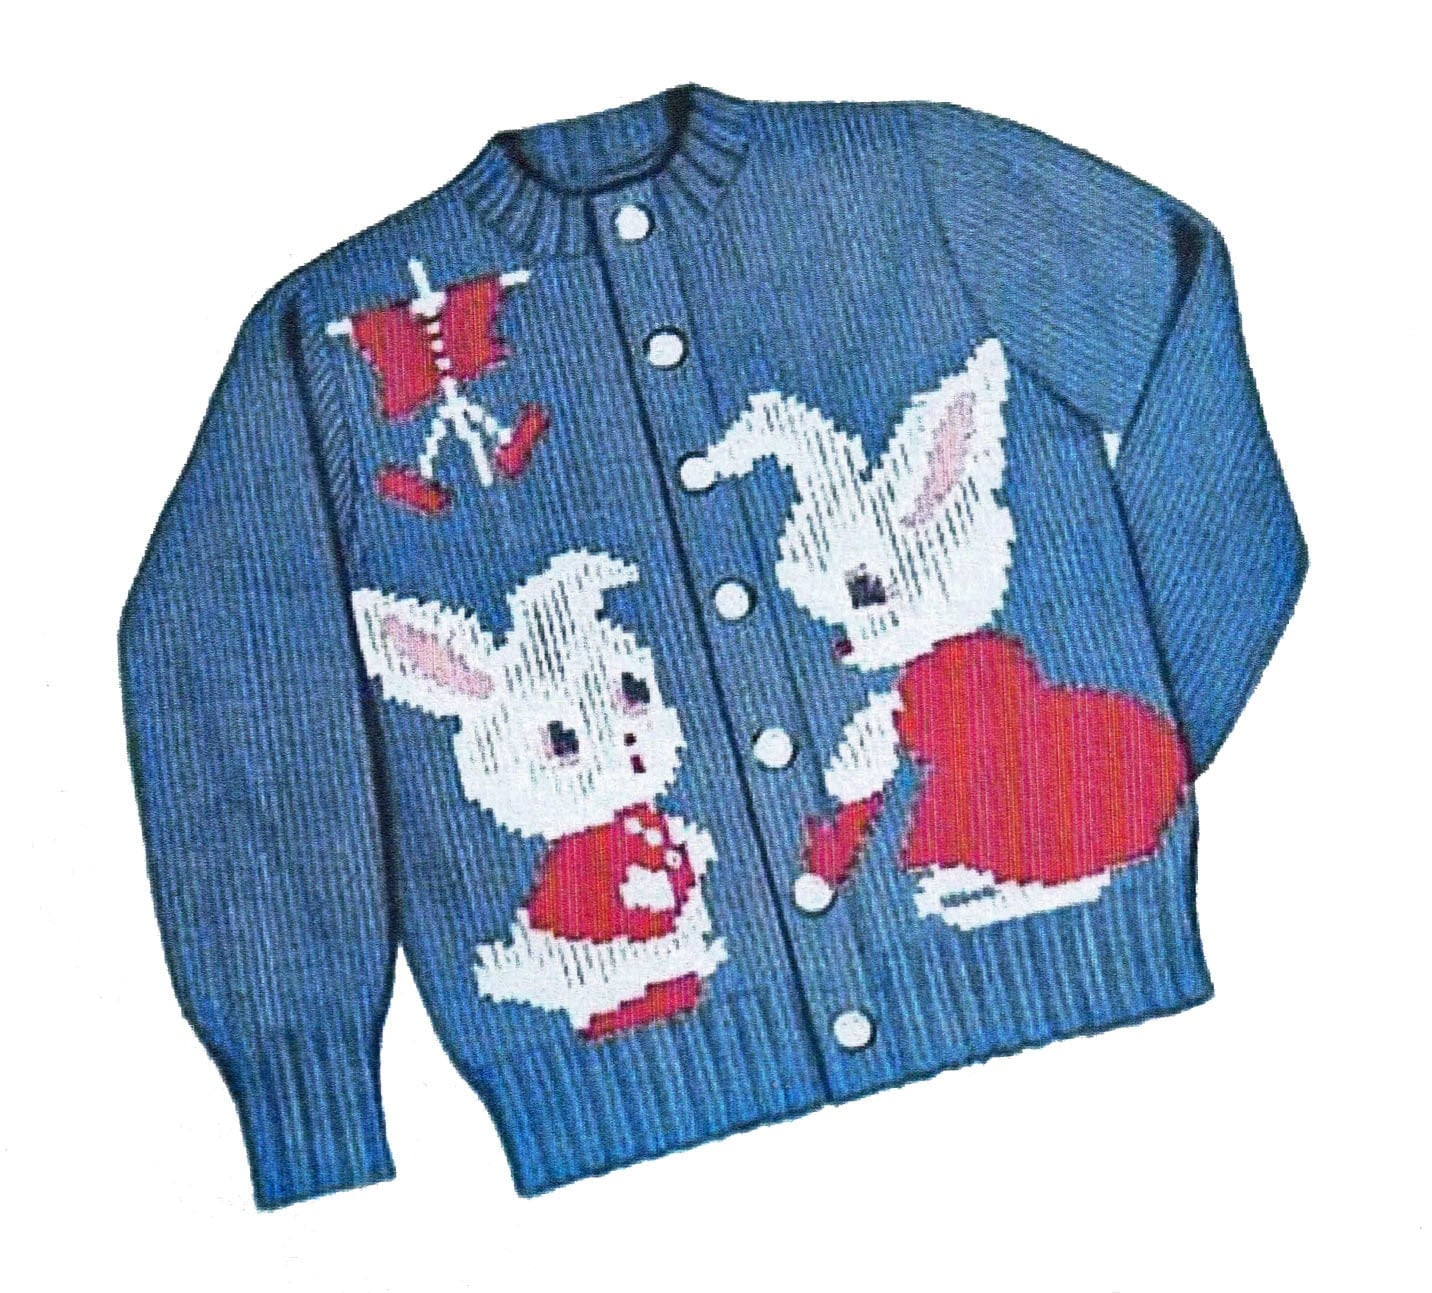 Rabbit Sweater Knitting Pattern : Peter rabbit sweater pattern knit o graf cardigan pullover